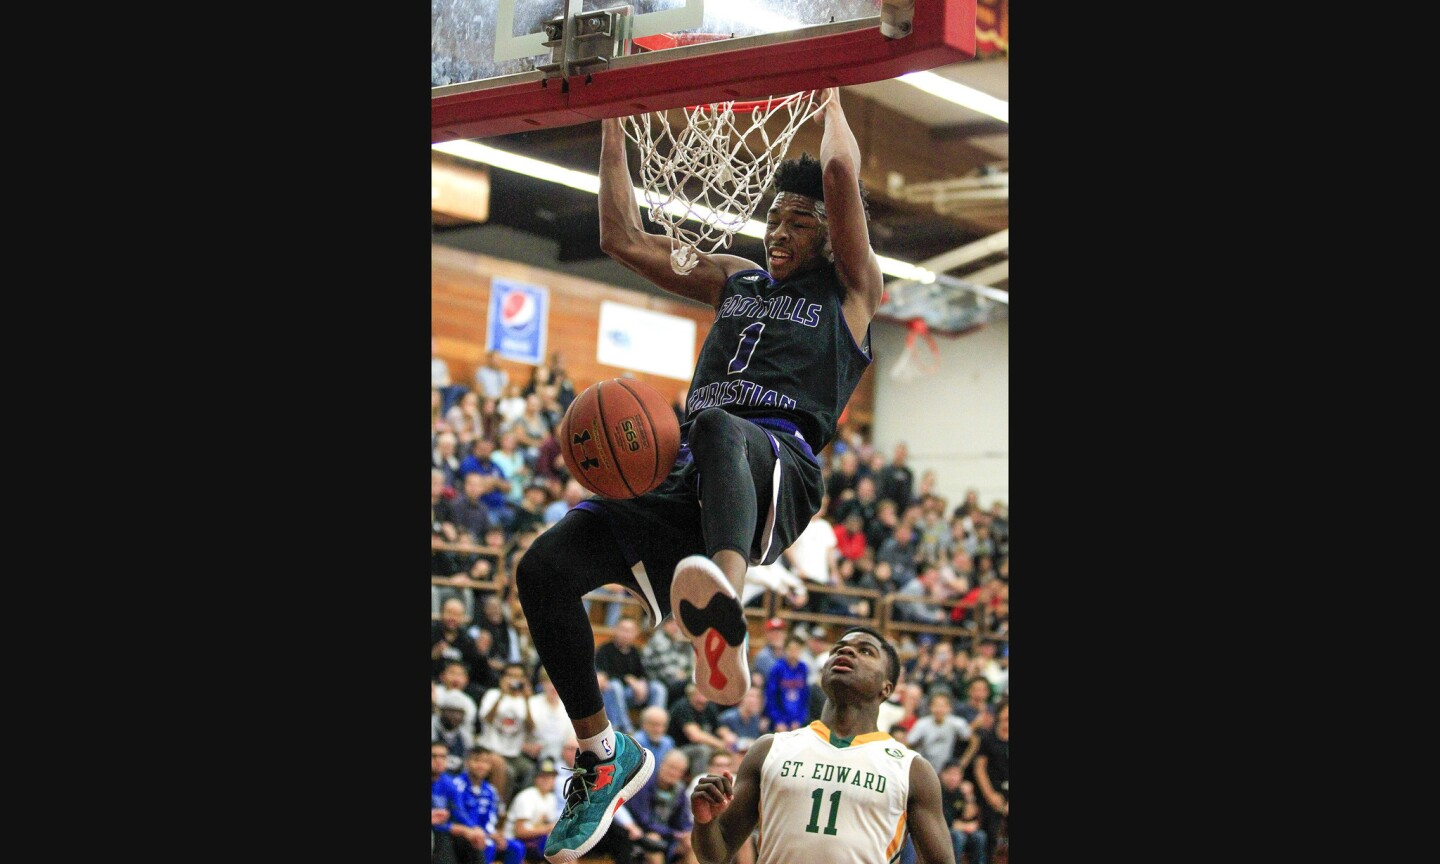 Foothills Christian's Jaylen Hands dunks the ball as St. Edward's Demetrius Terry watches during the first half.